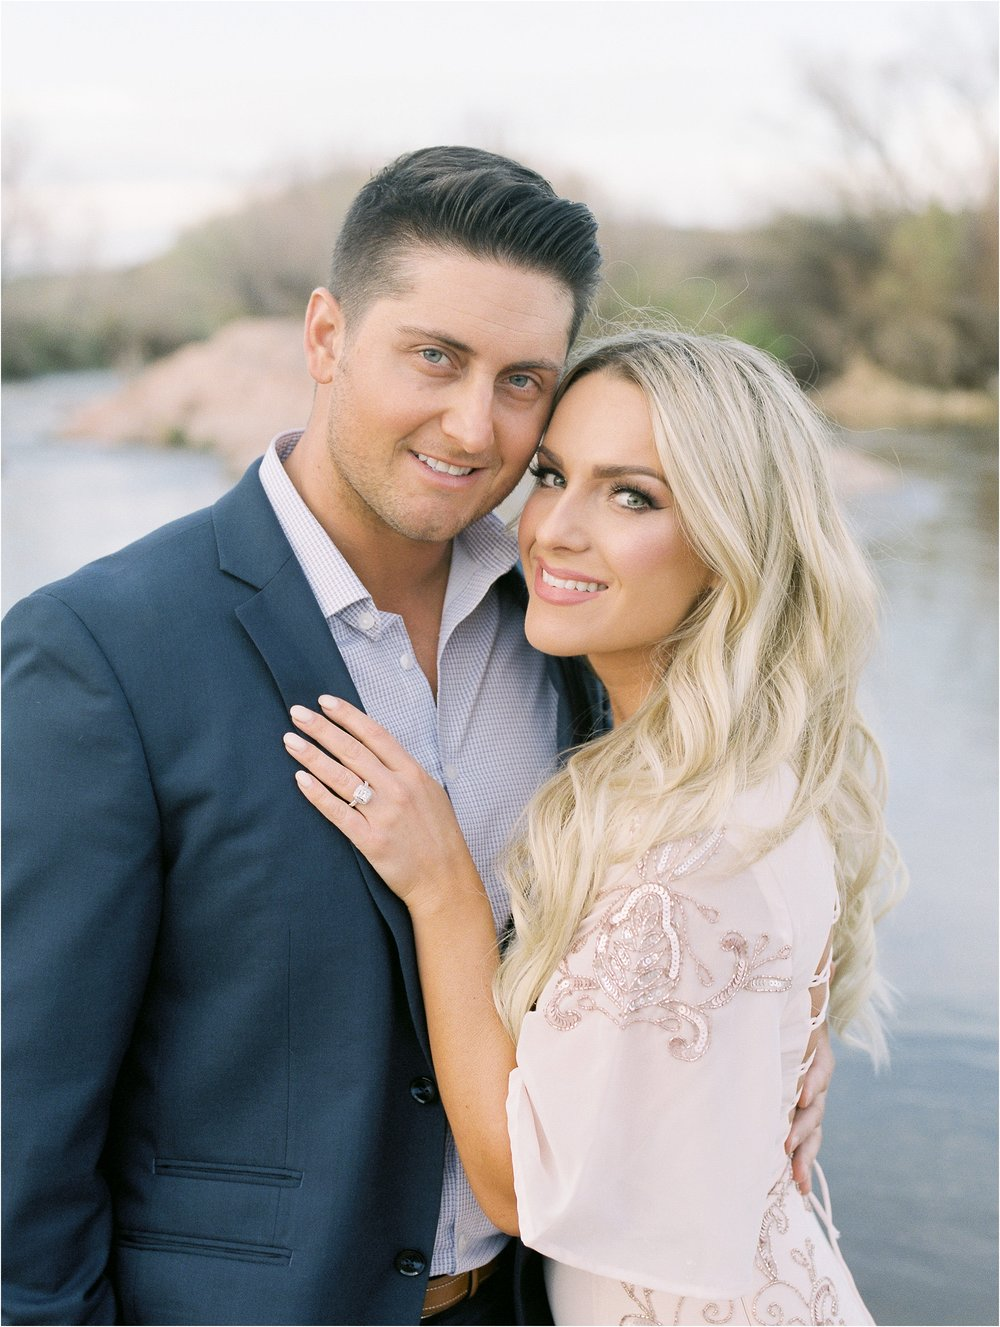 Sarah Jane Photography Film Hybrid Scottsdale Phoenix Arizona Destination Wedding Photographer salt river asos engagement britney tj_0026.jpg